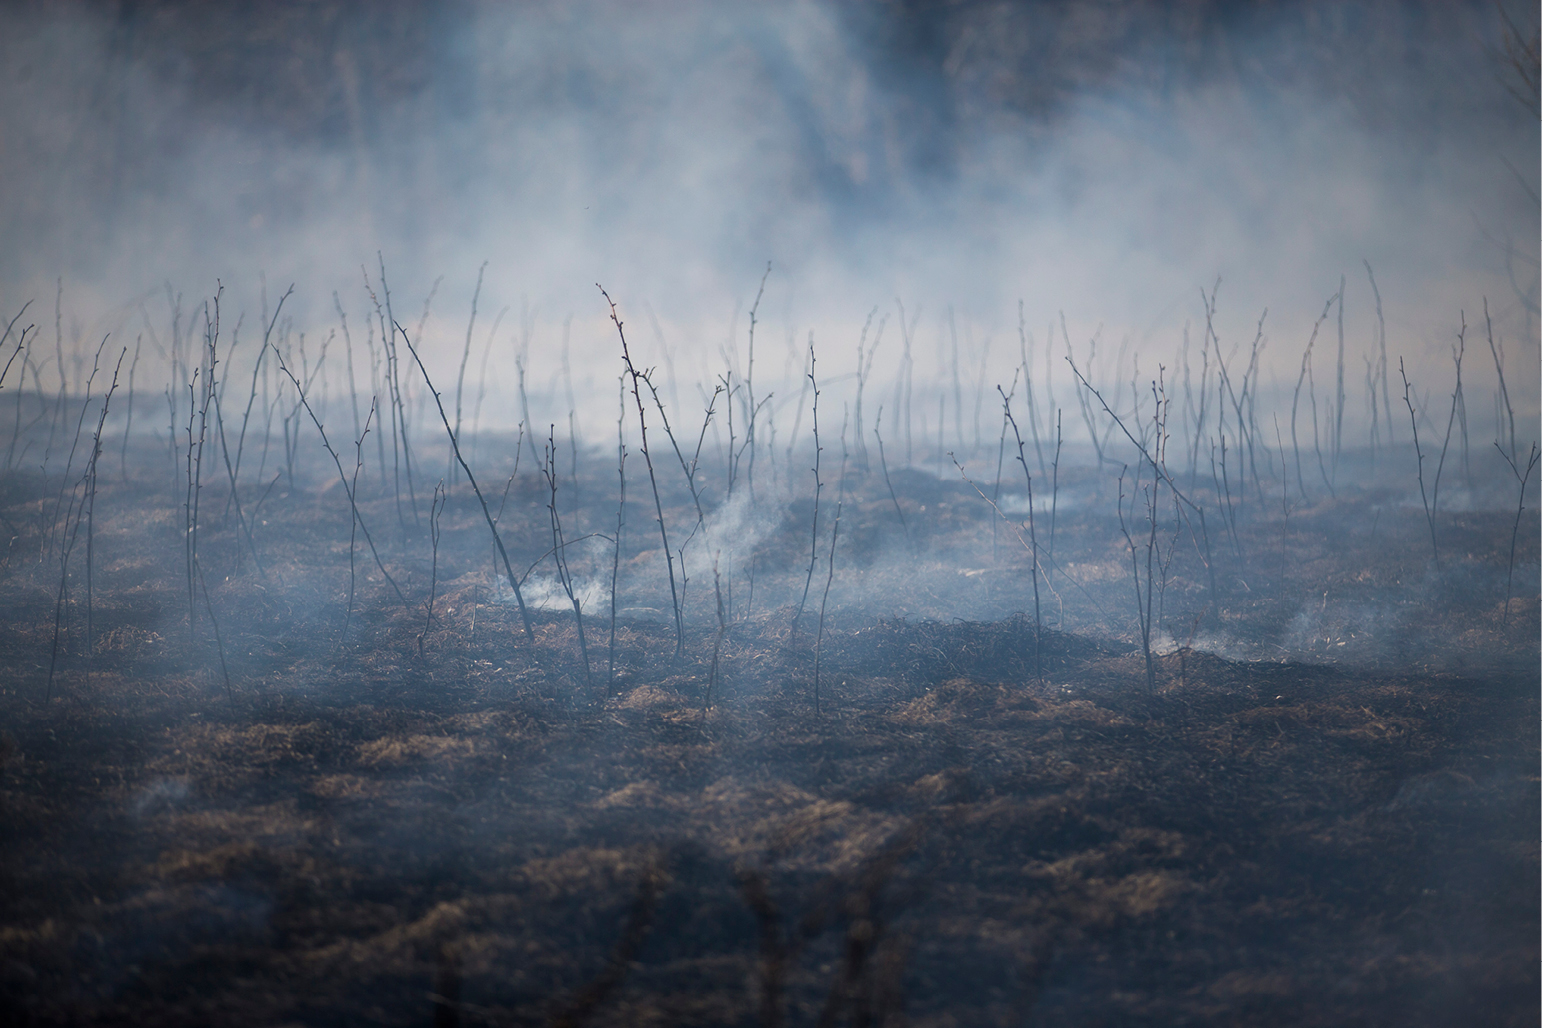 Grass burn in the spring